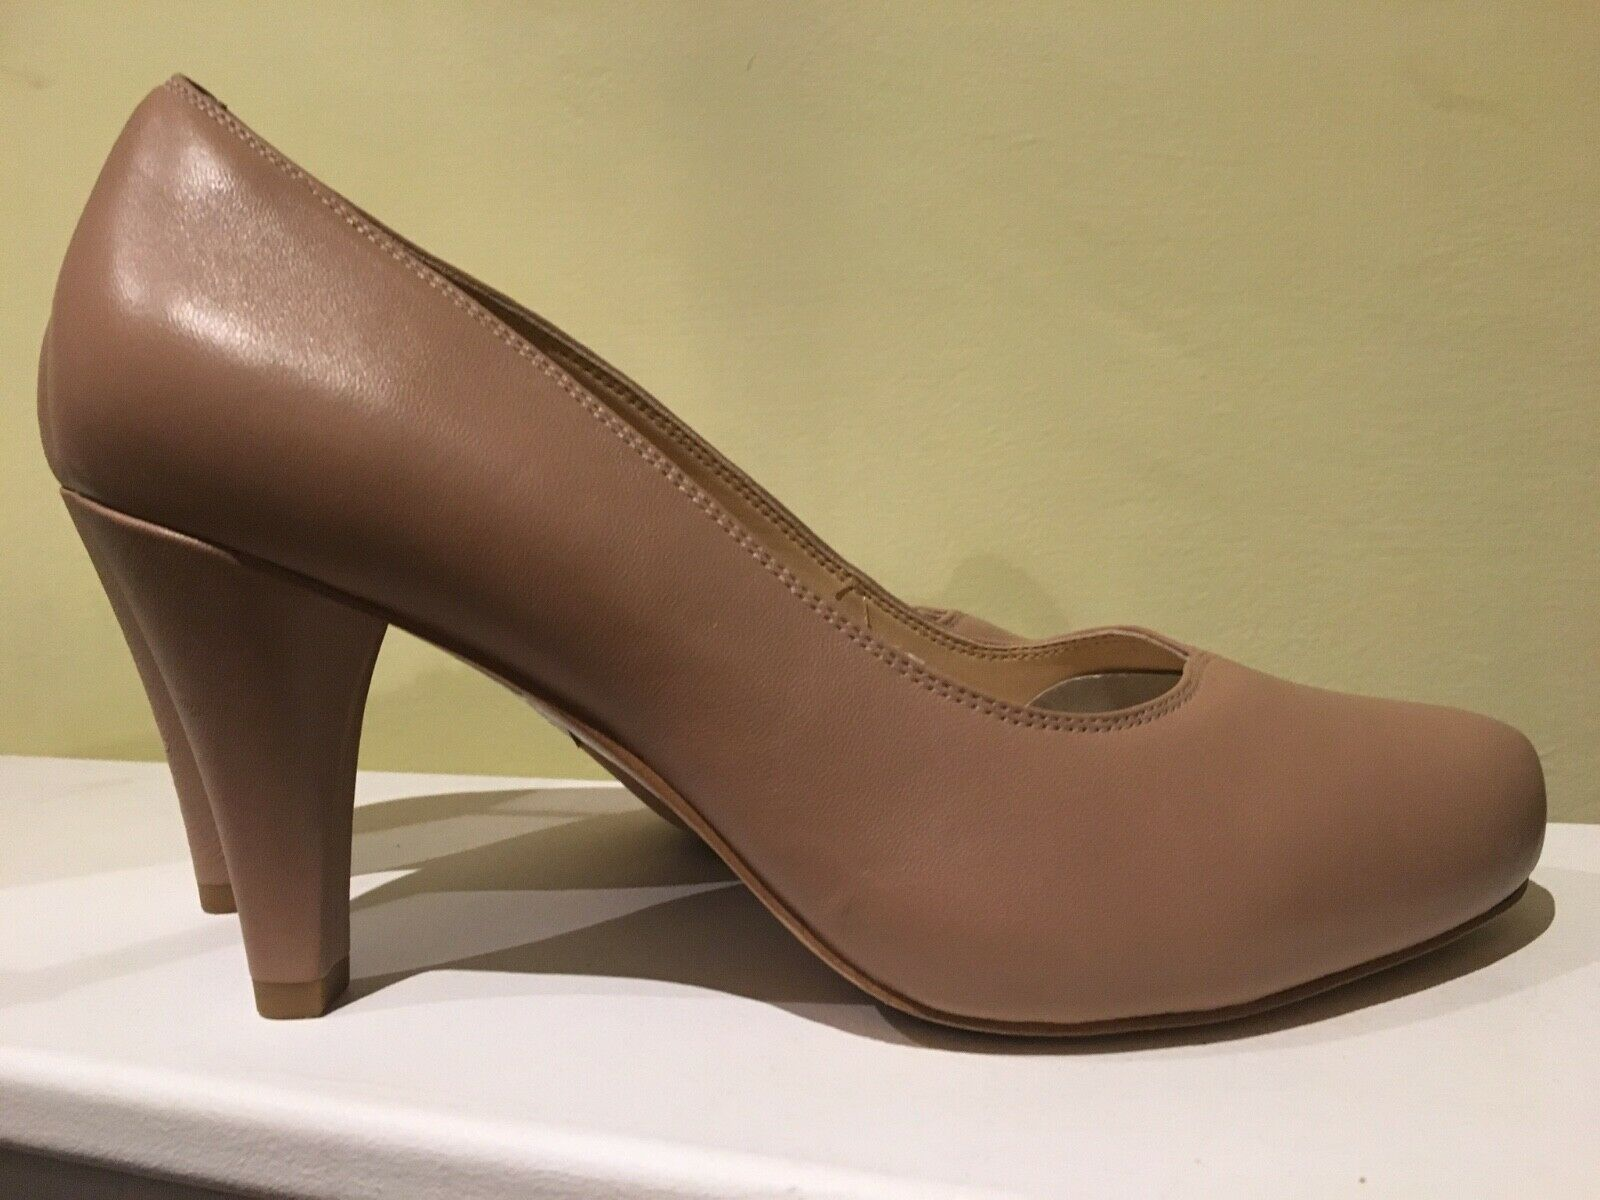 Brand-new Clarks real leather nude court shoes UK 8